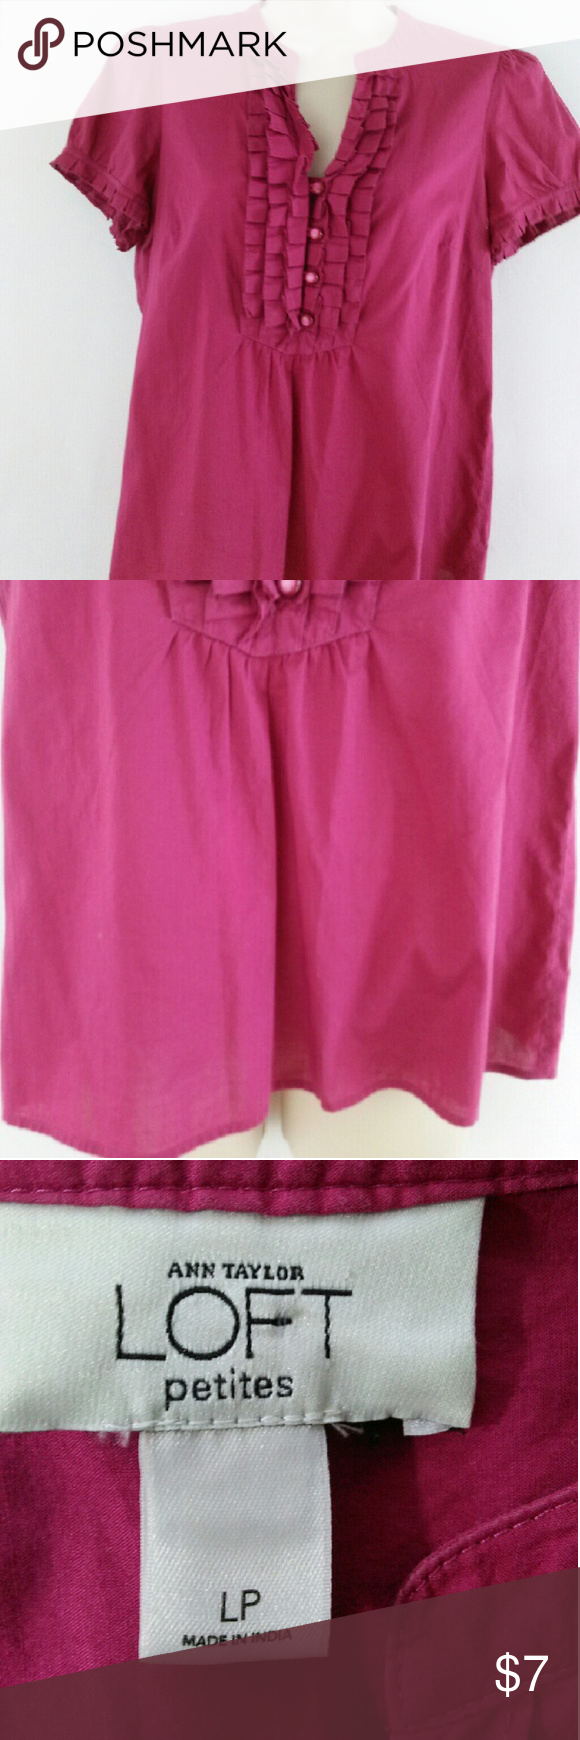 Ann Taylor / Loft plum wine colored blouse A pretty purple color that can be worn to the office or after. The bust is 40 inches. The length is 23 inches. It is a size large petite. Bundle and save on shipping Ann Taylor Tops Blouses